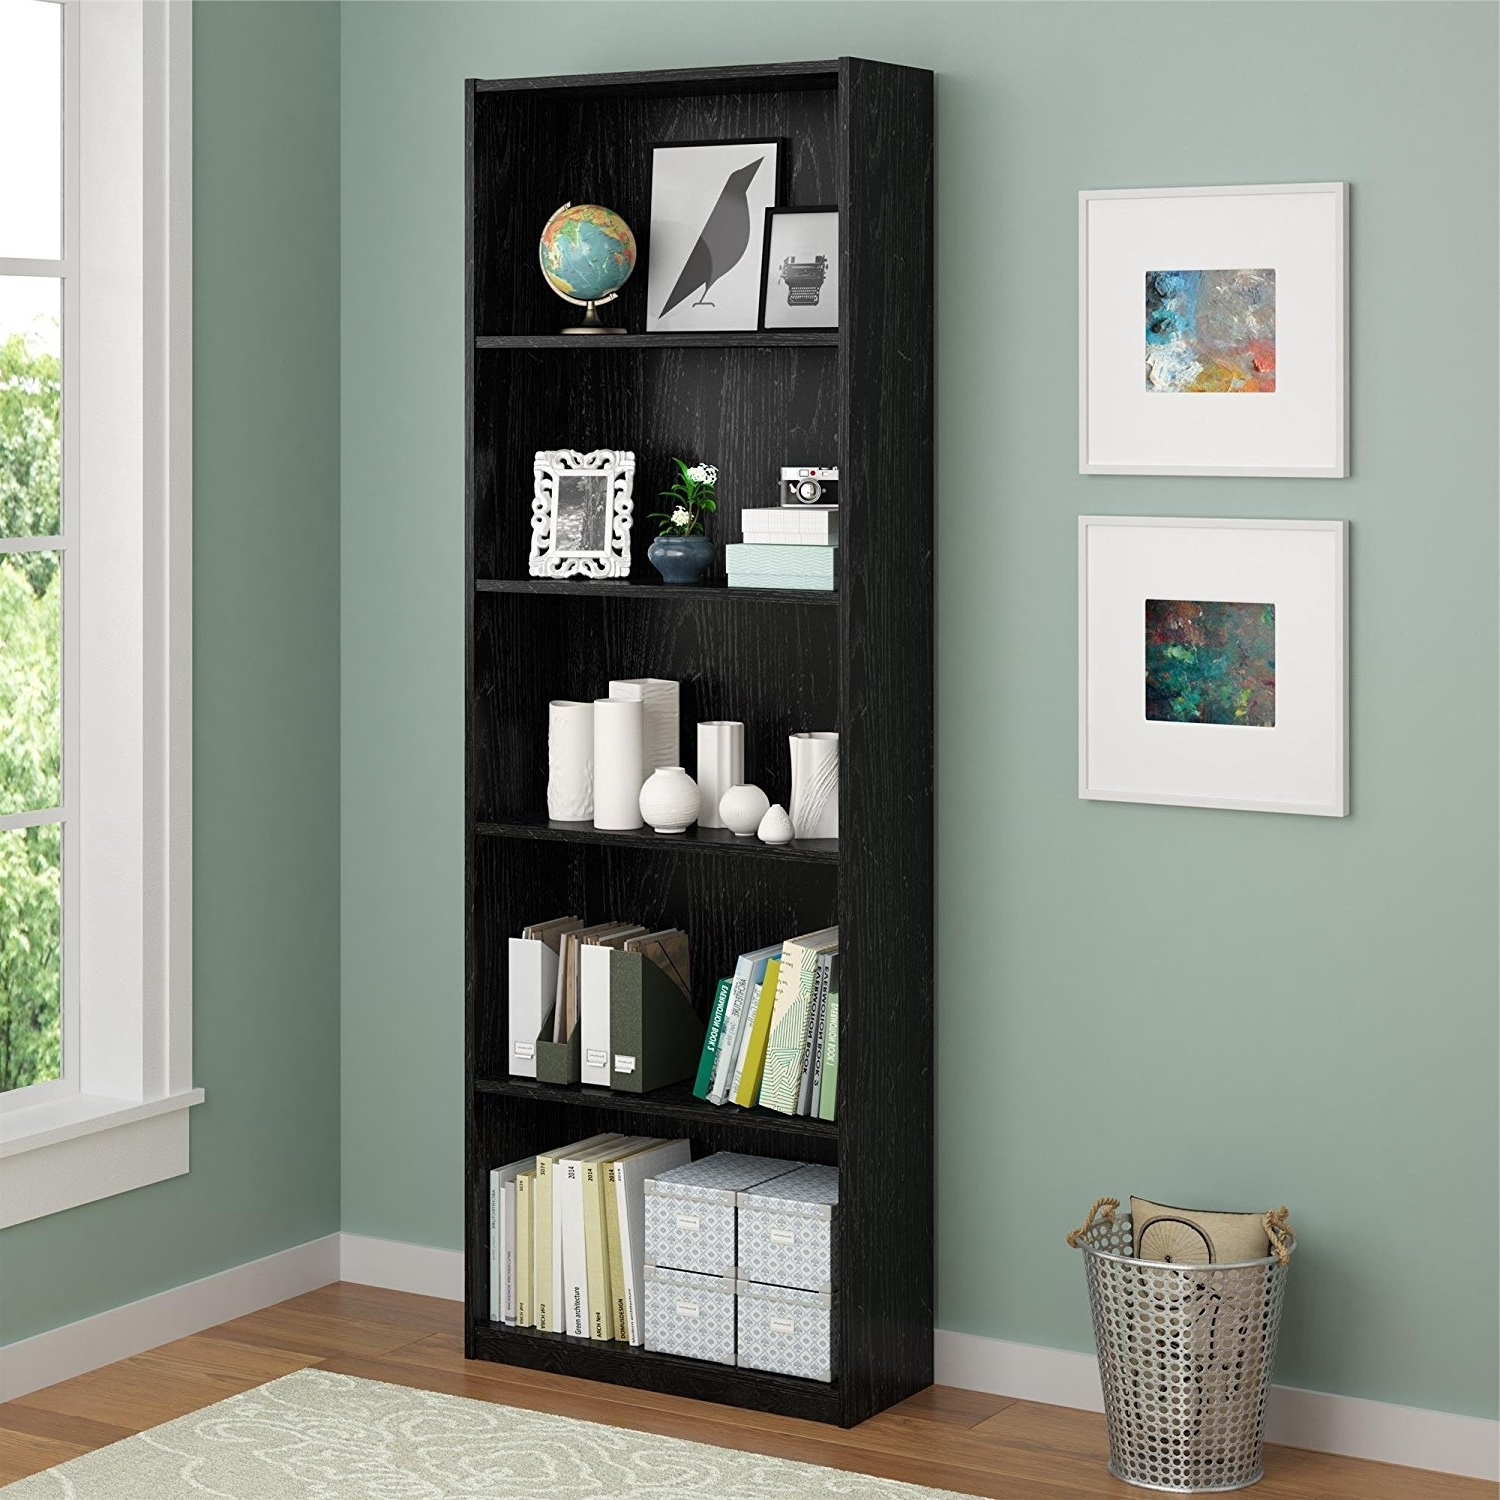 Amazon: Ameriwood 5 Shelf Adjustable Bookcase, Set Of 2, Black Intended For Recent Ameriwood 5 Shelf Bookcases (View 3 of 15)